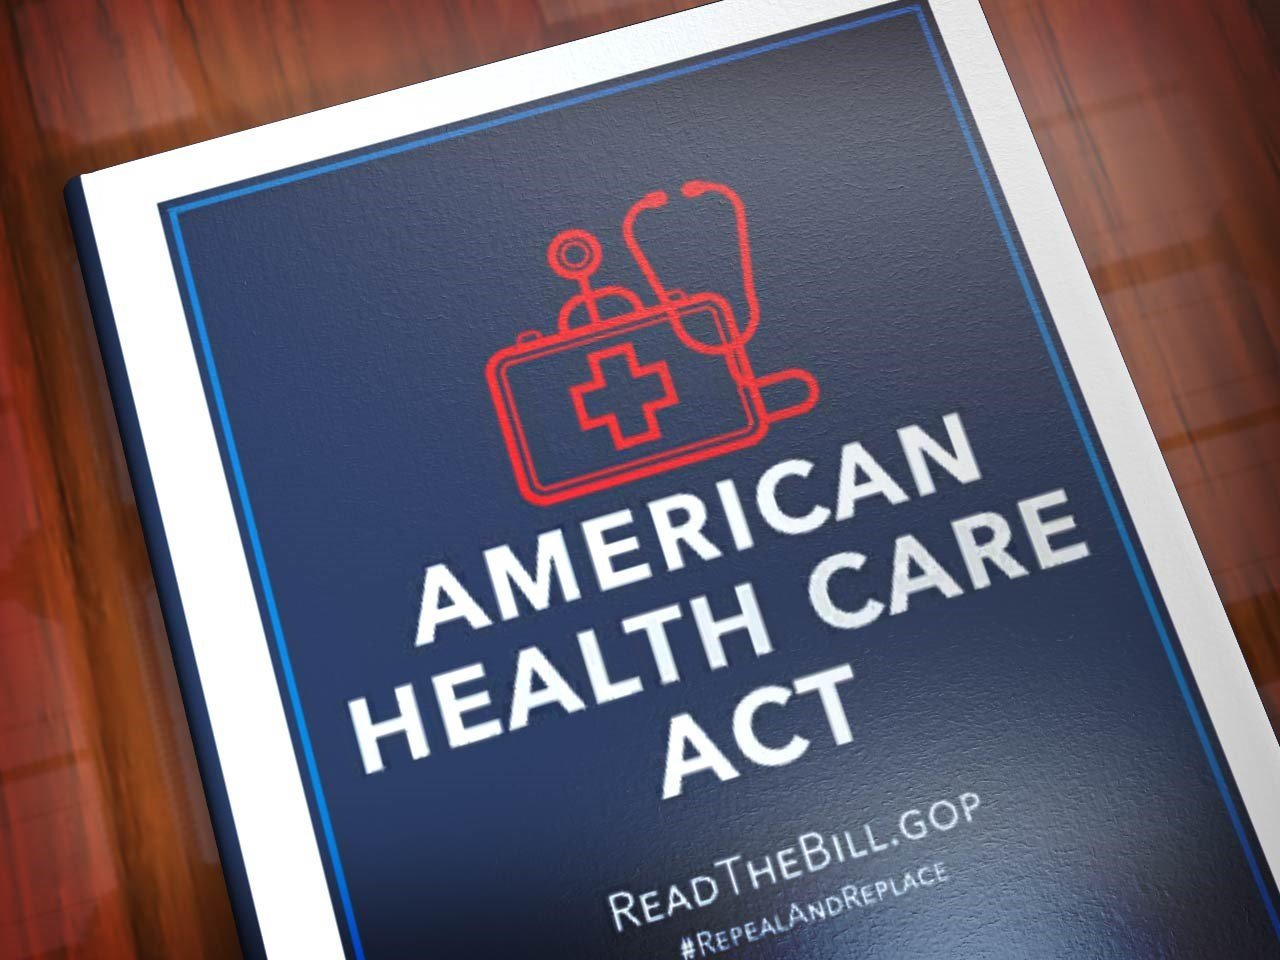 House nears pivotal vote to repeal and replace Obamacare, with outcome uncertain